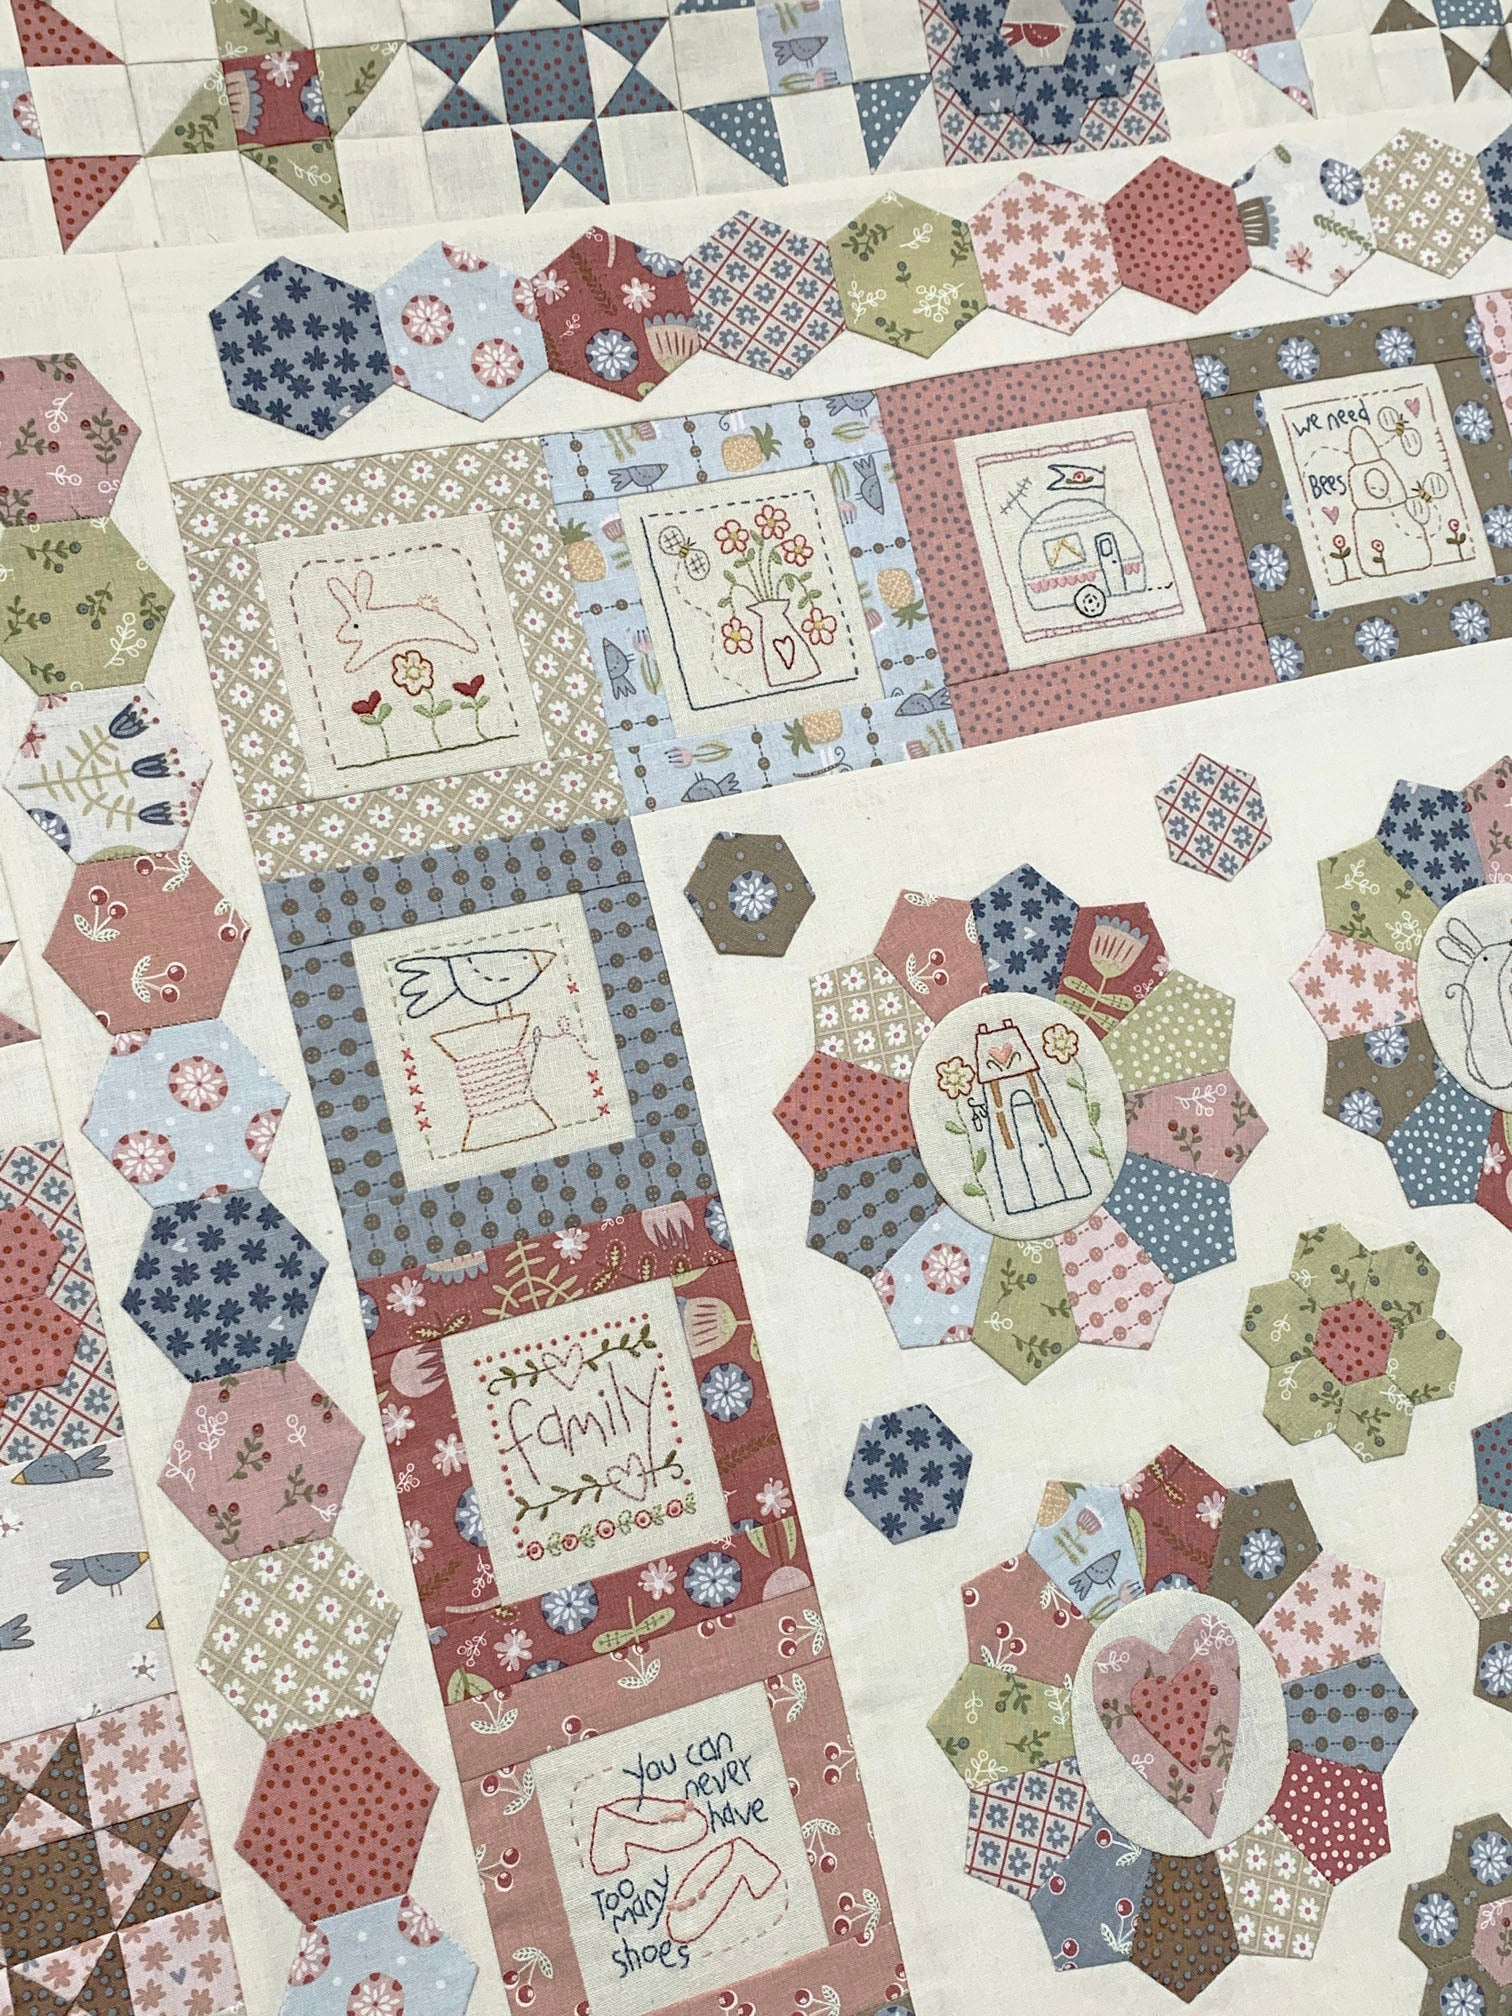 Heartstrings Quilt Pattern – The Birdhouse Patchwork Designs